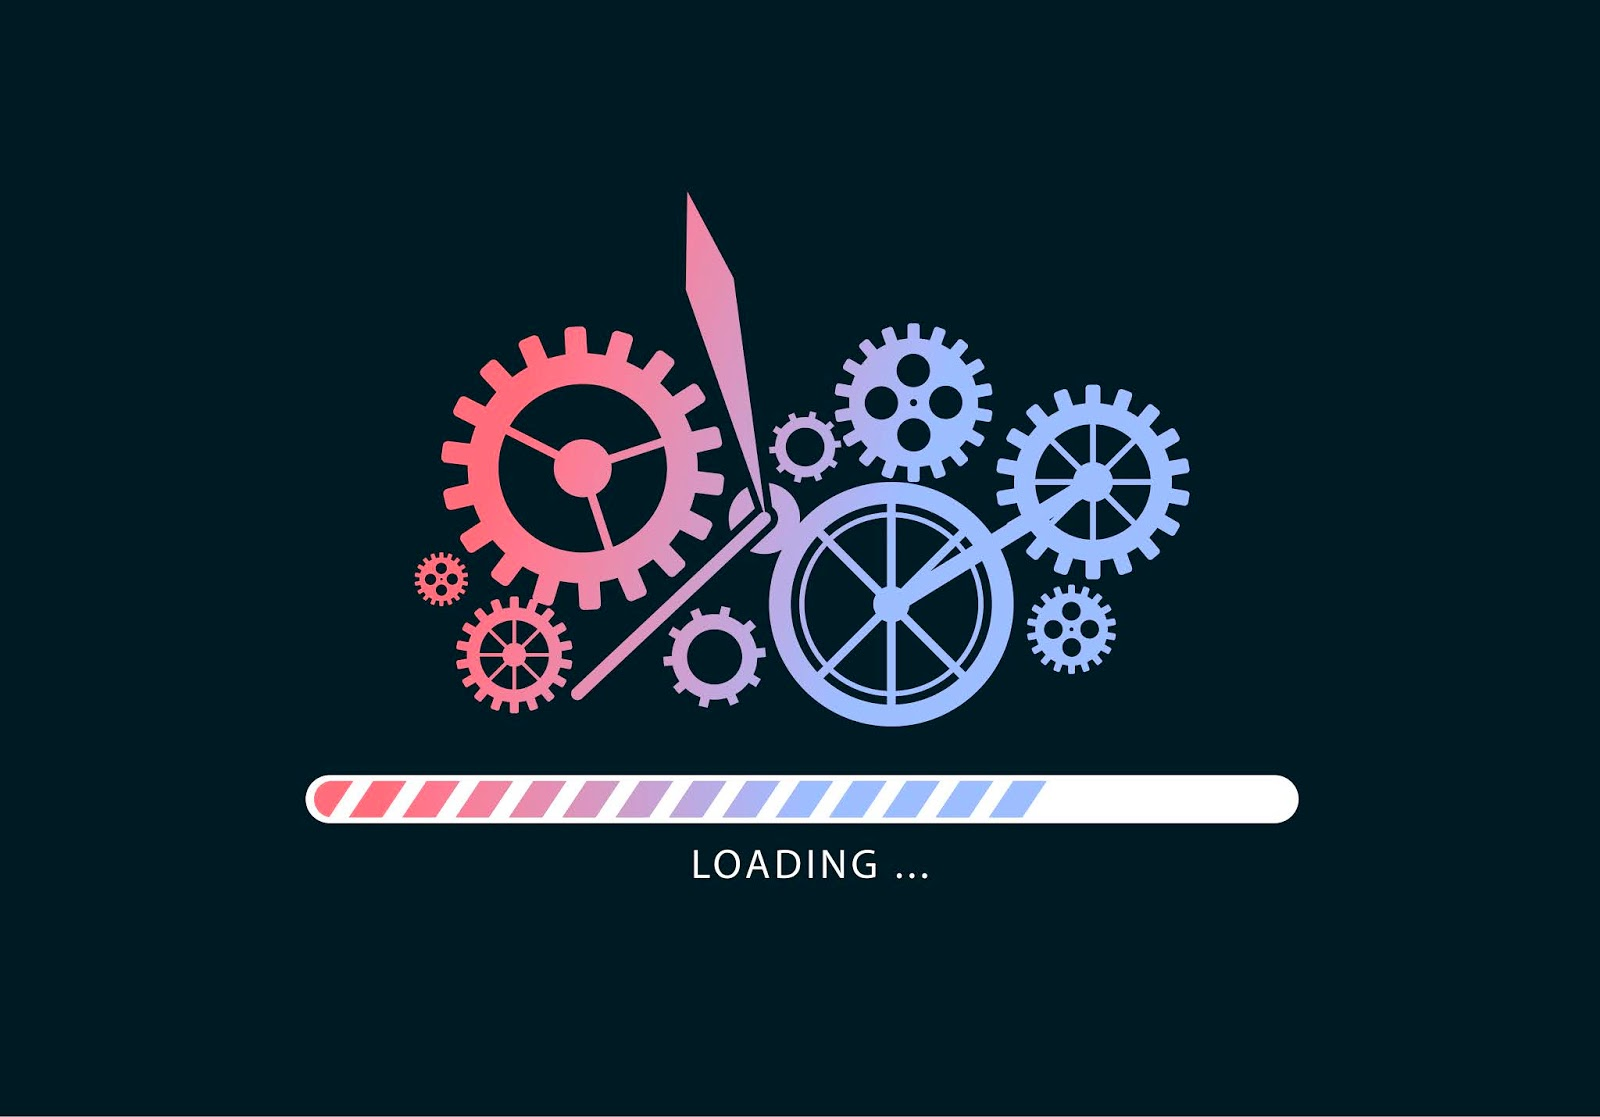 Loading Files With Mechanism Free Download Vector CDR, AI, EPS and PNG Formats